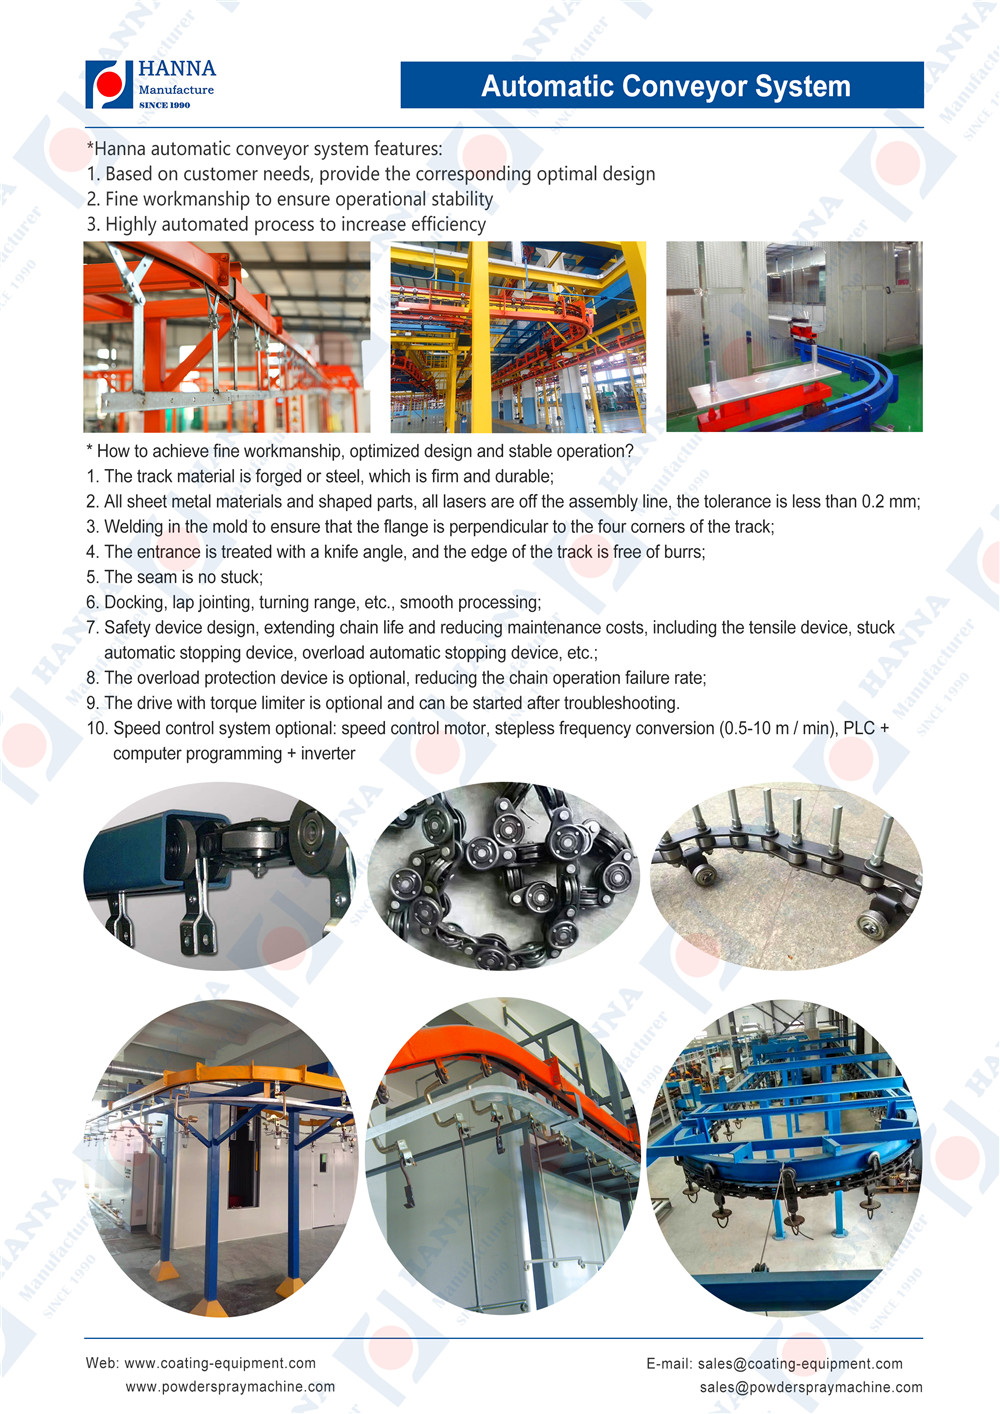 Automatic conveyor system